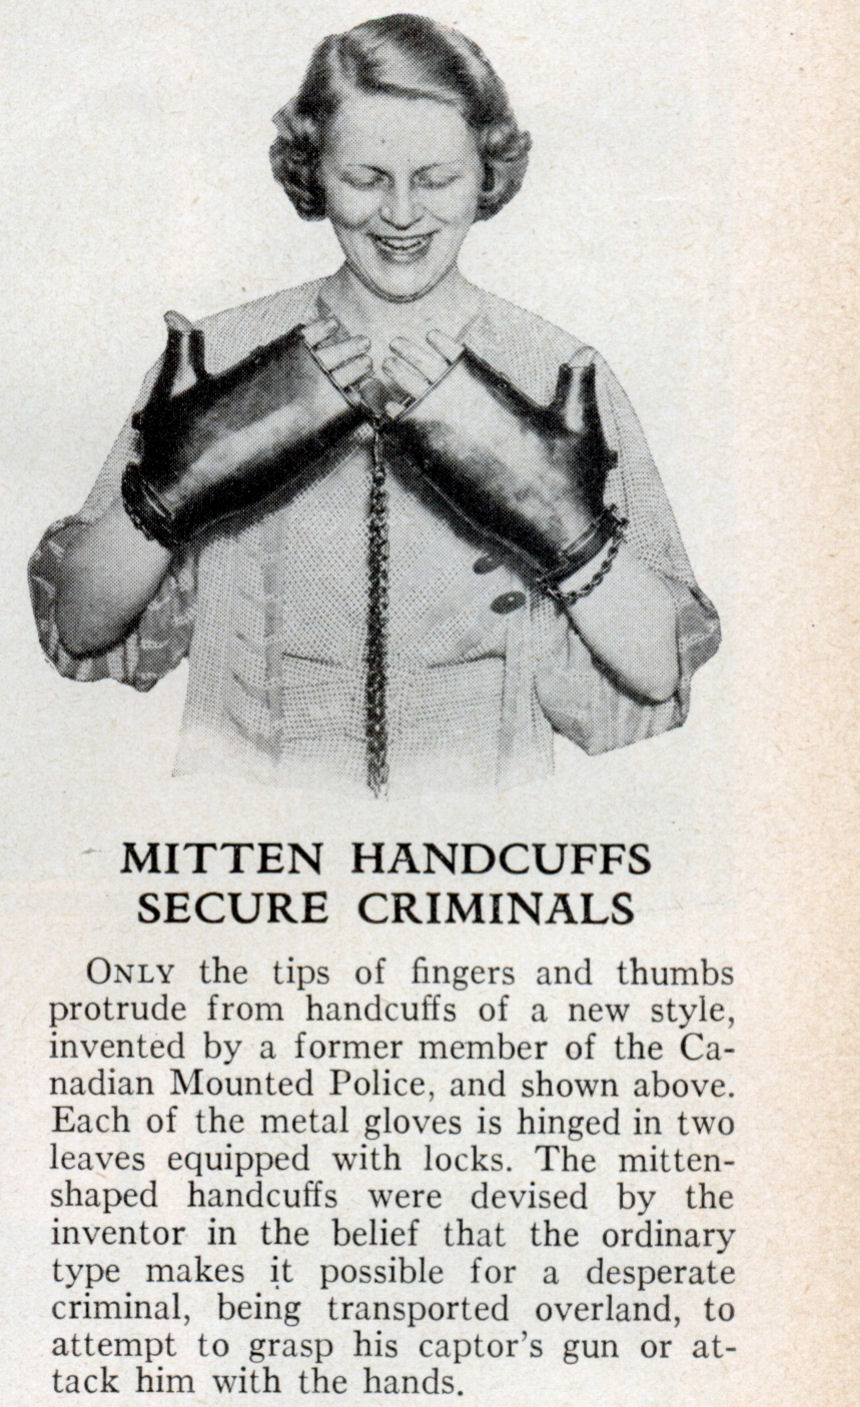 http://blog.modernmechanix.com/mags/PopularScience/10-1933/mitten_handcuffs.jpg